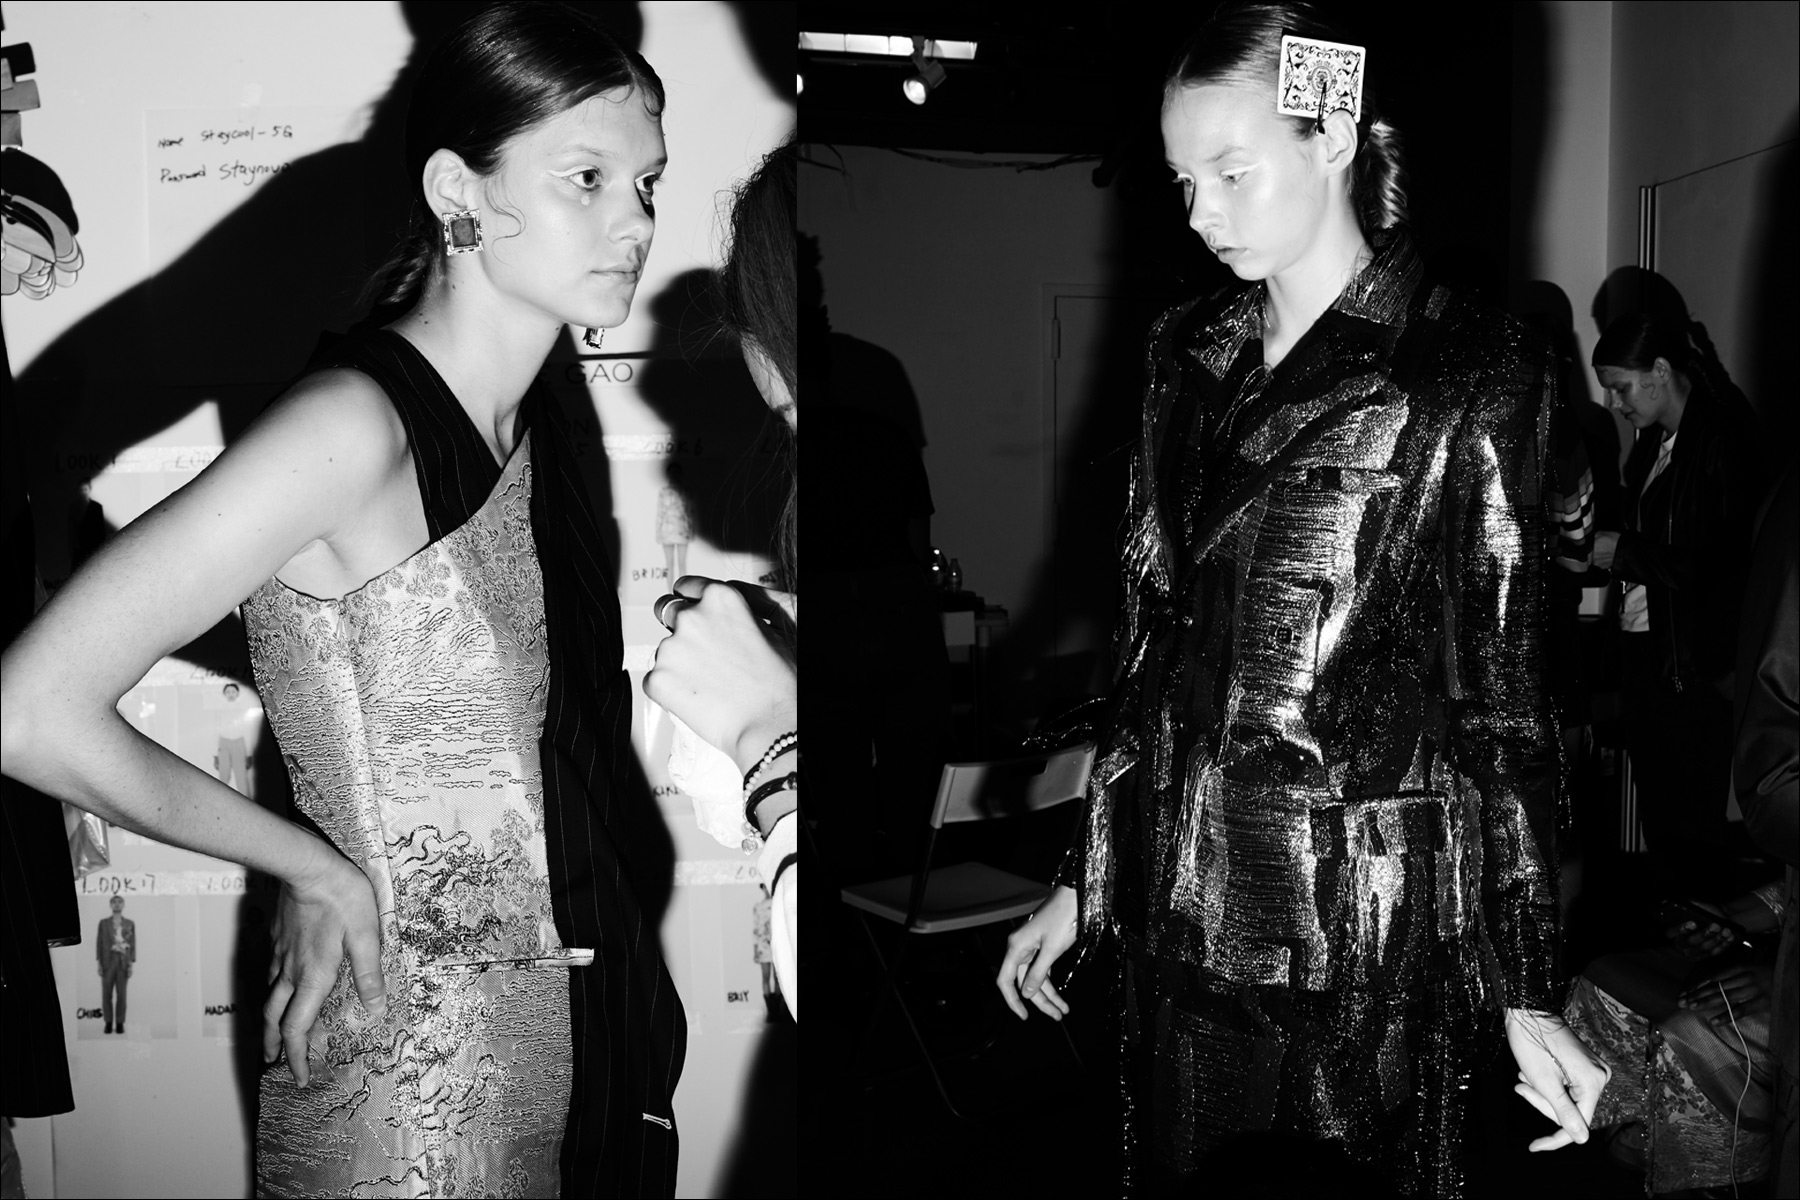 Models get prepped backstage before the Snow Xue Gao presentation, for S/S18. Photography by Alexander Thompson for Ponyboy magazine NY.